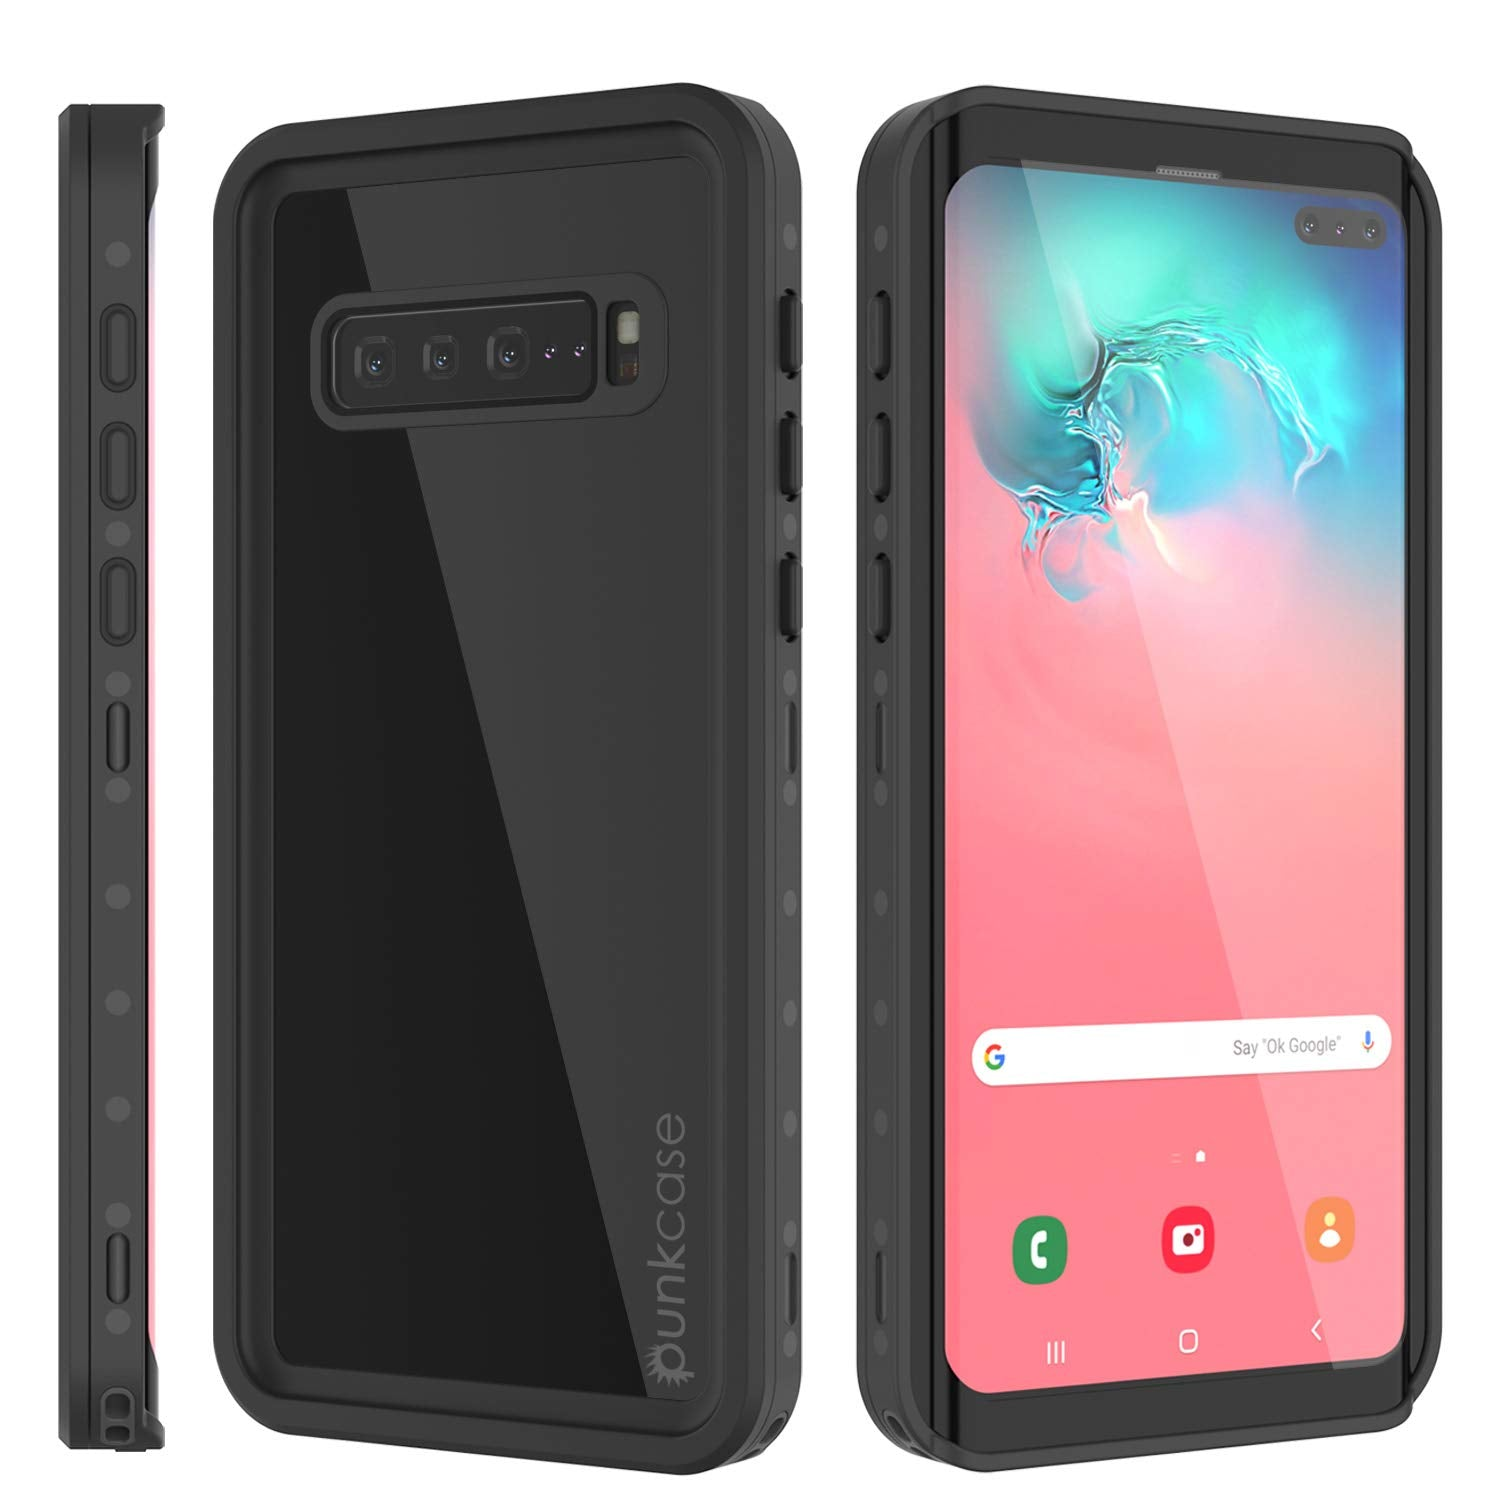 Galaxy S10 5G Waterproof Case PunkCase StudStar Black Thin 6.6ft Underwater IP68 Shock/Snow Proof